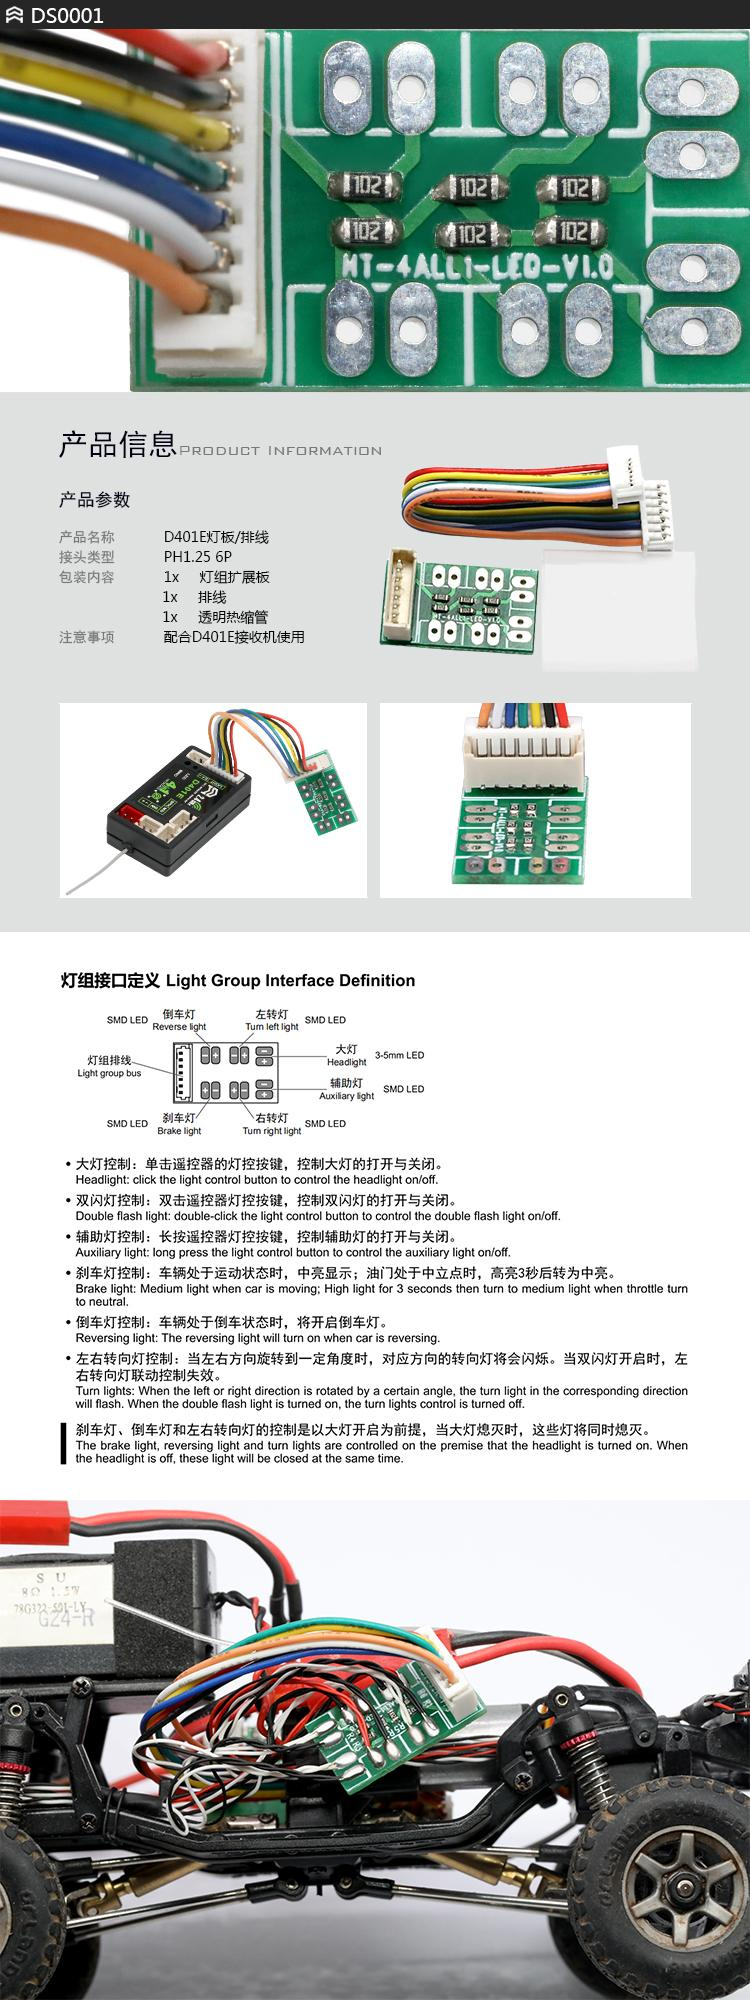 led-board-wires.jpg